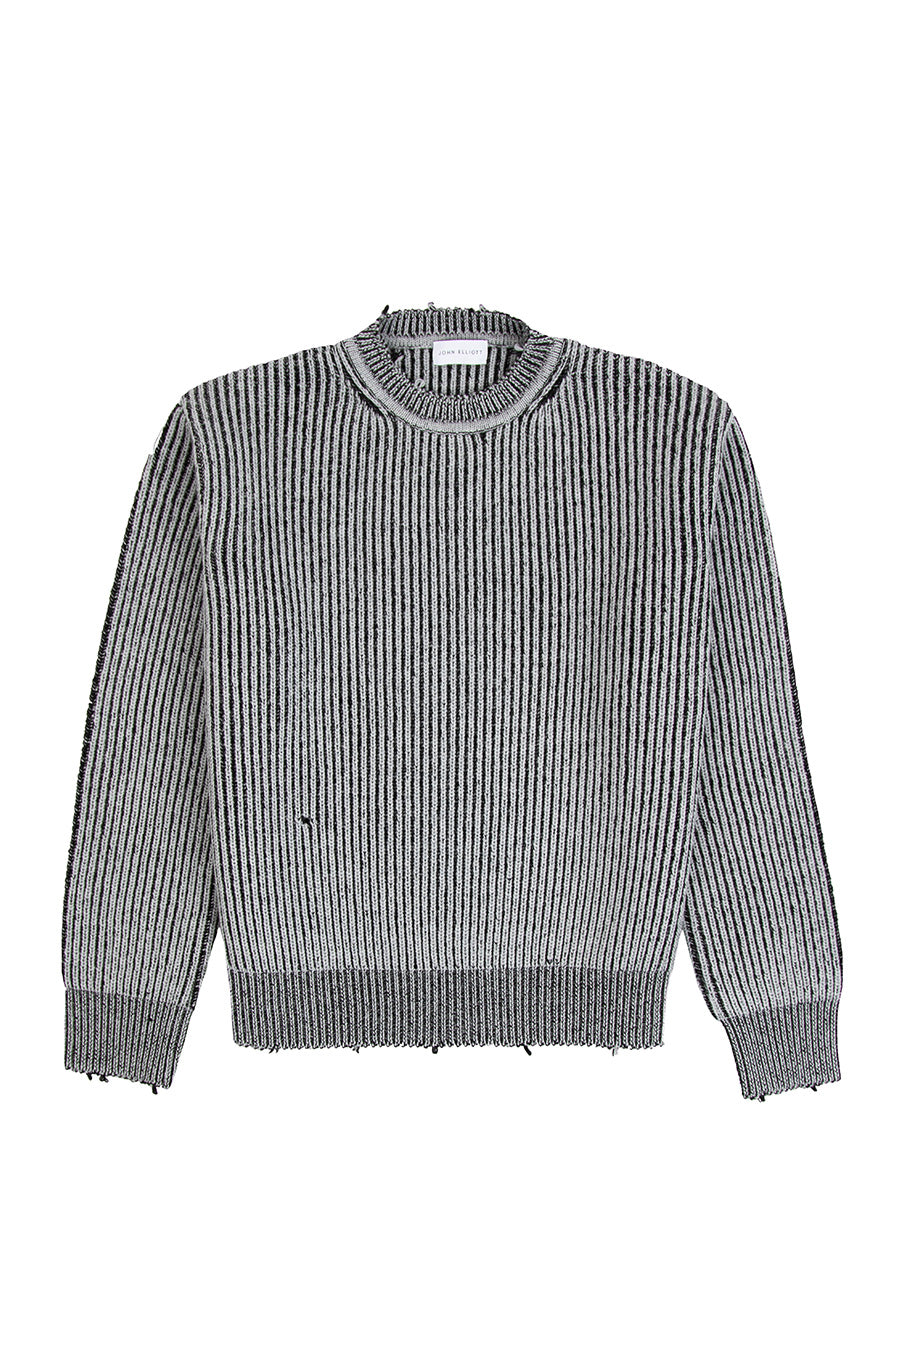 John Elliott - Grey Ash Structure Wool Knit Sweater | 1032 SPACE